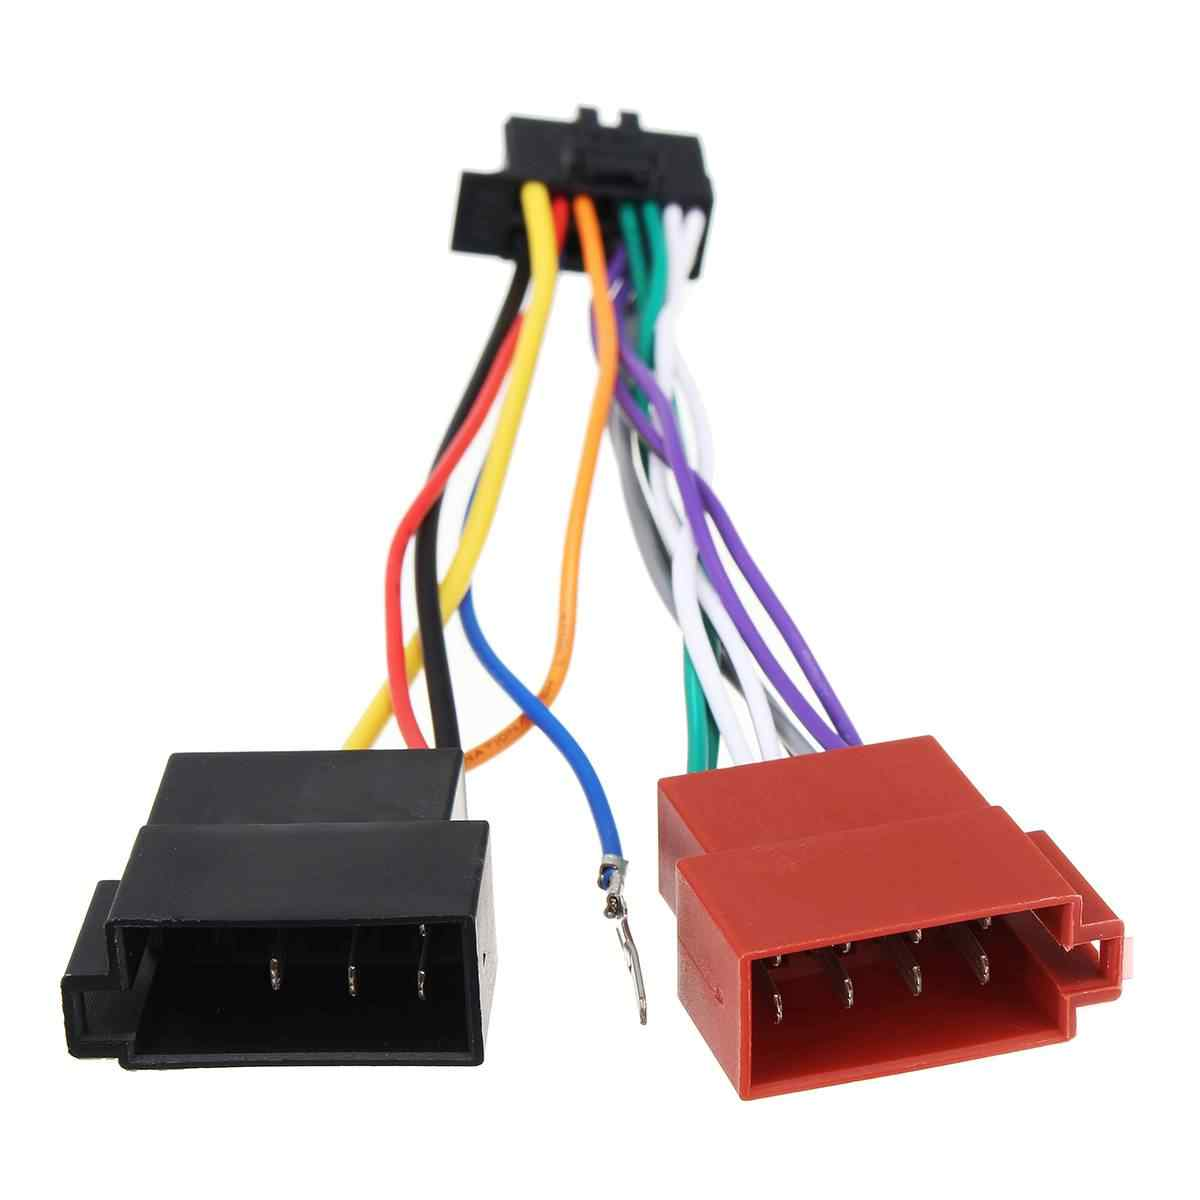 16 pin car stereo radio player iso wiring harness connector for pioneer 2003 on  [ 1200 x 1200 Pixel ]